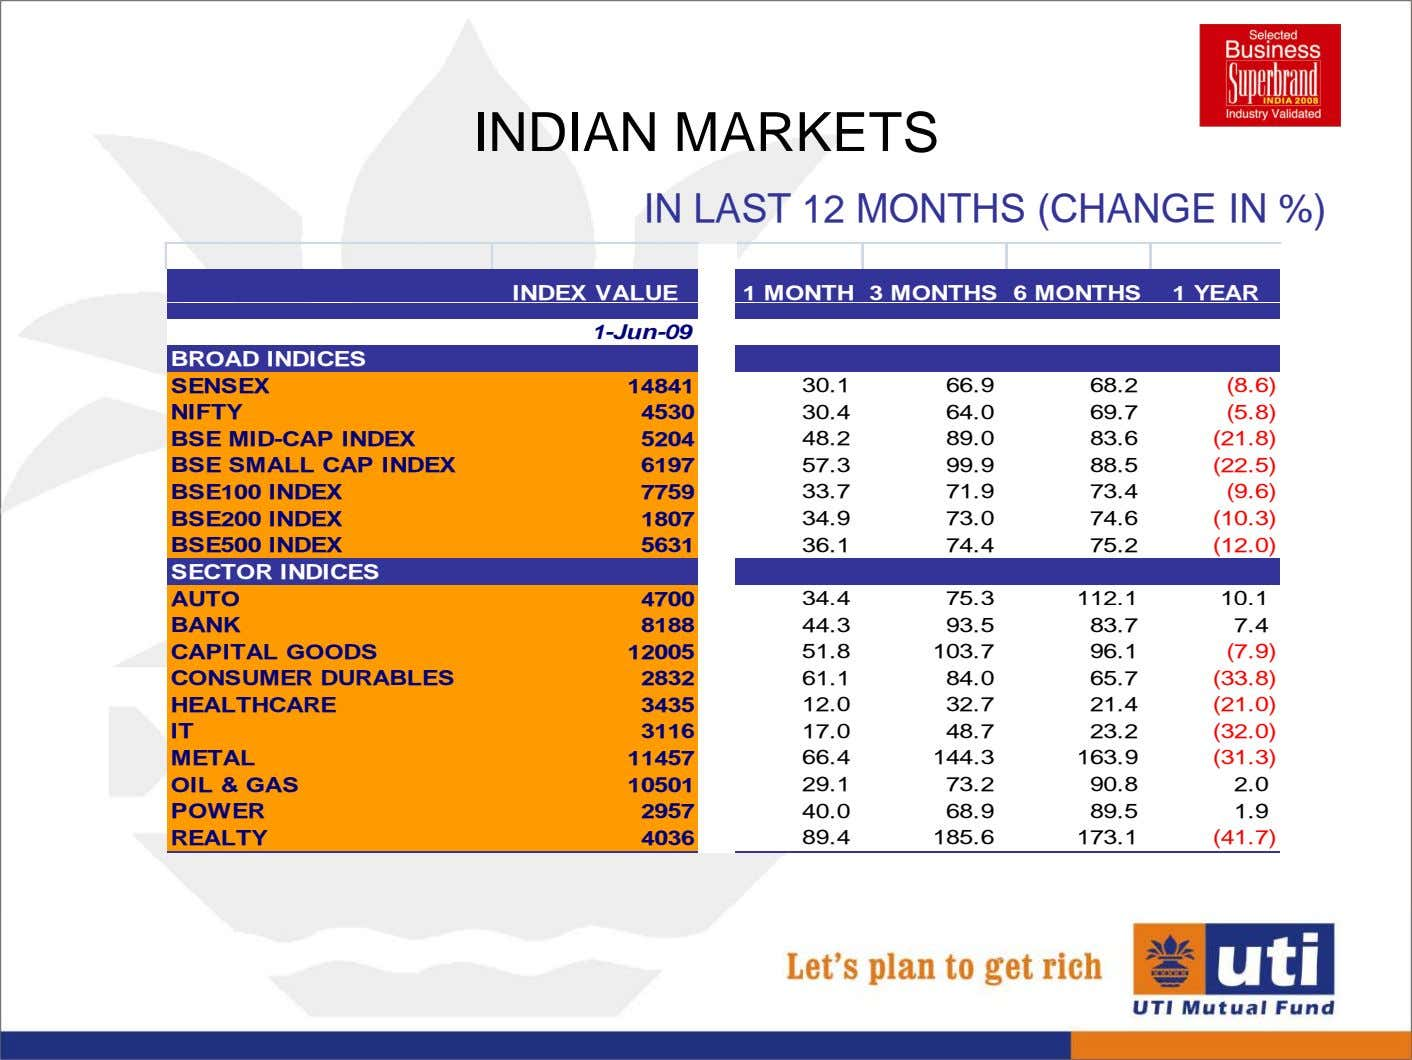 INDIAN MARKETS IN LAST 12 MONTHS (CHANGE IN %) INDEX VALUE 1 MONTH 3 MONTHS